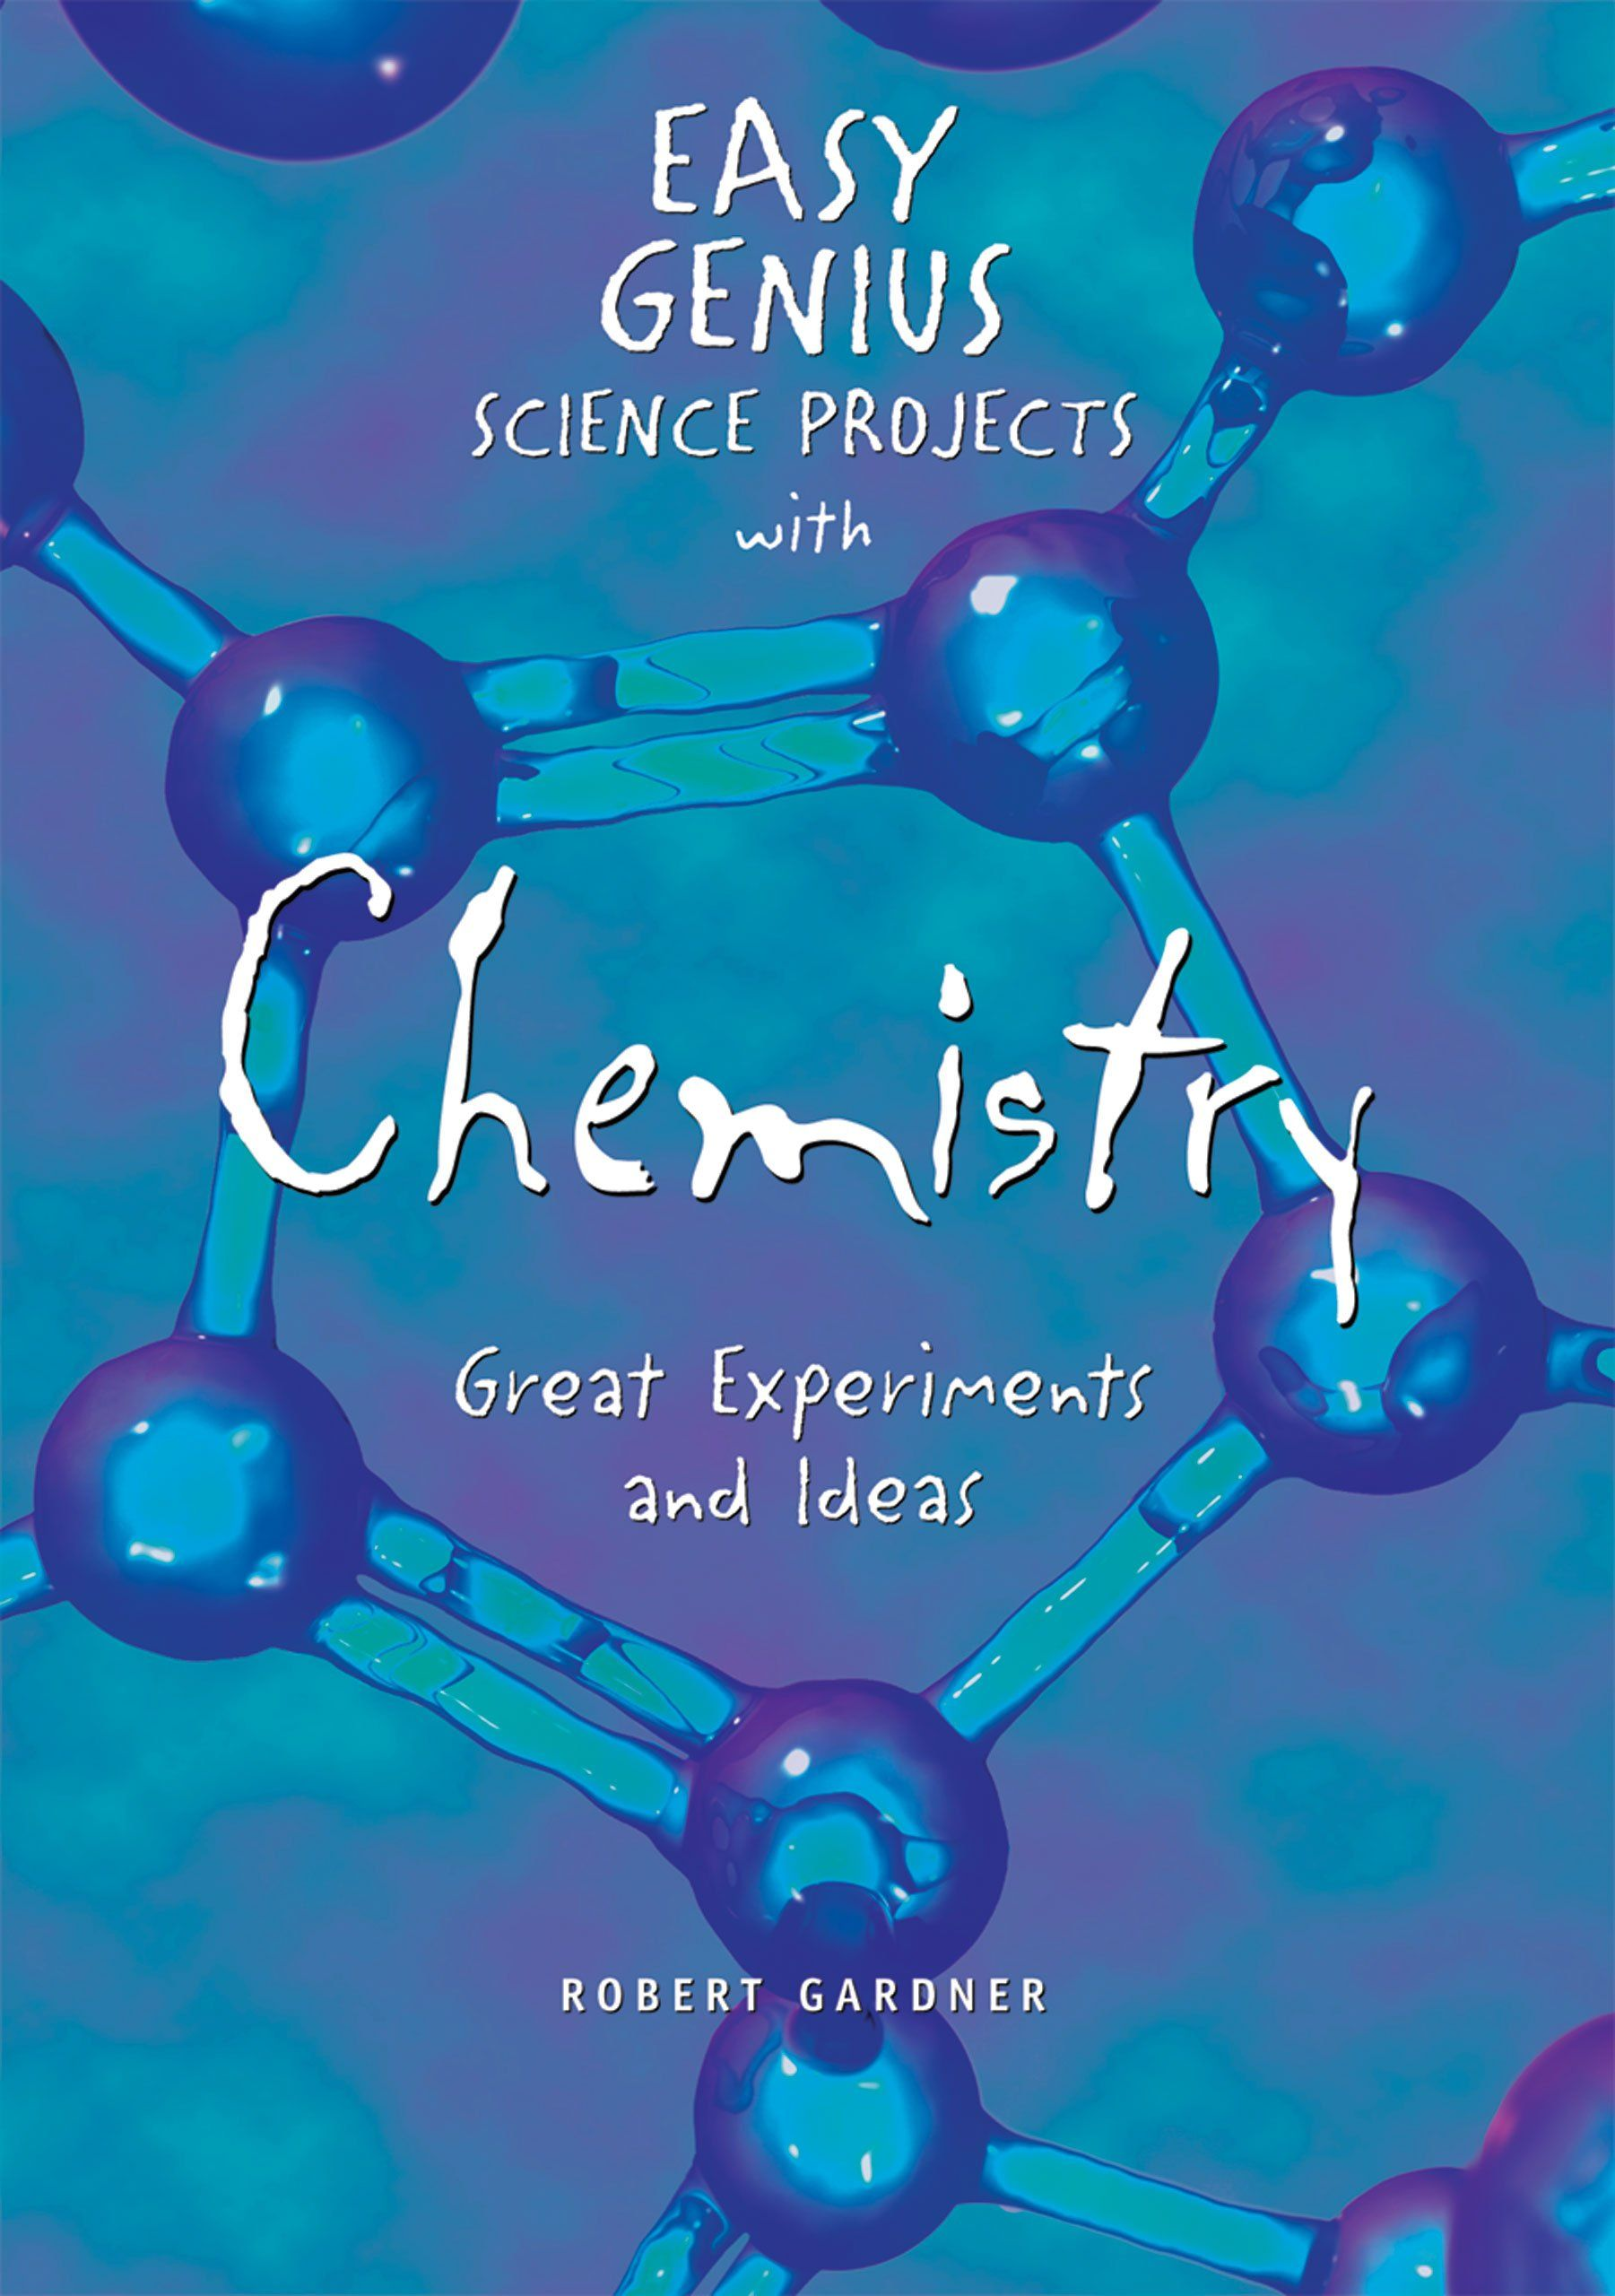 Easy Genius Science Projects With Chemistry Great Experiments And Ideas Science Projects Science Fair Projects Science